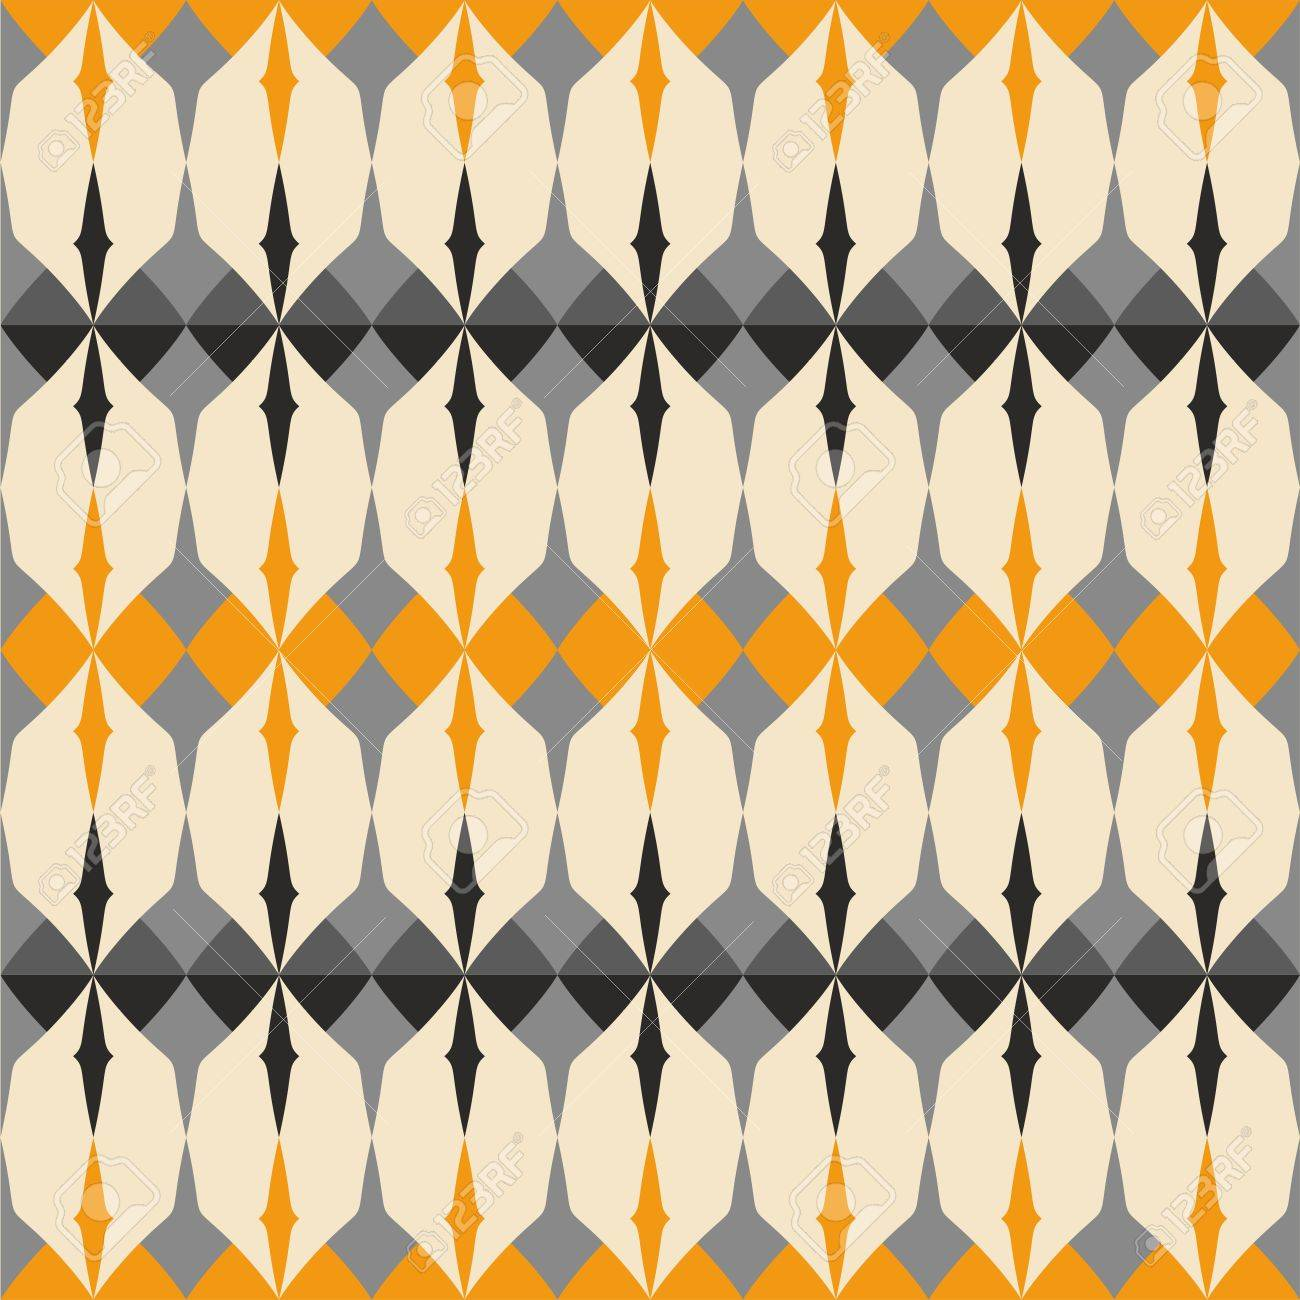 46114487 tile gray black and orange vector pattern with geometric decoration background wallpaper